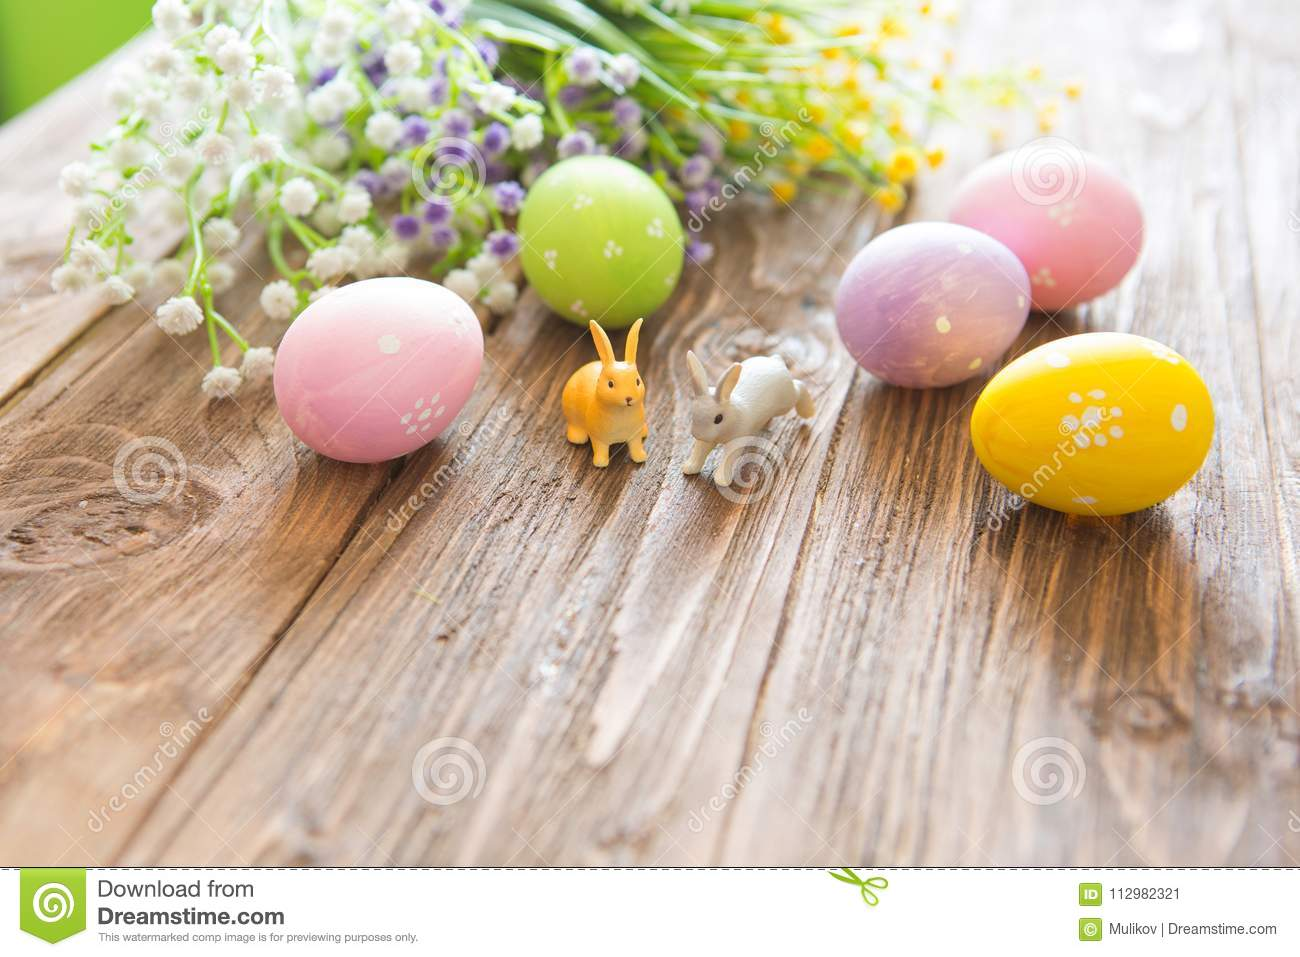 Happy Easter concept. Easter eggs with flowers and small bunny toys on wooden board, easter holiday concept